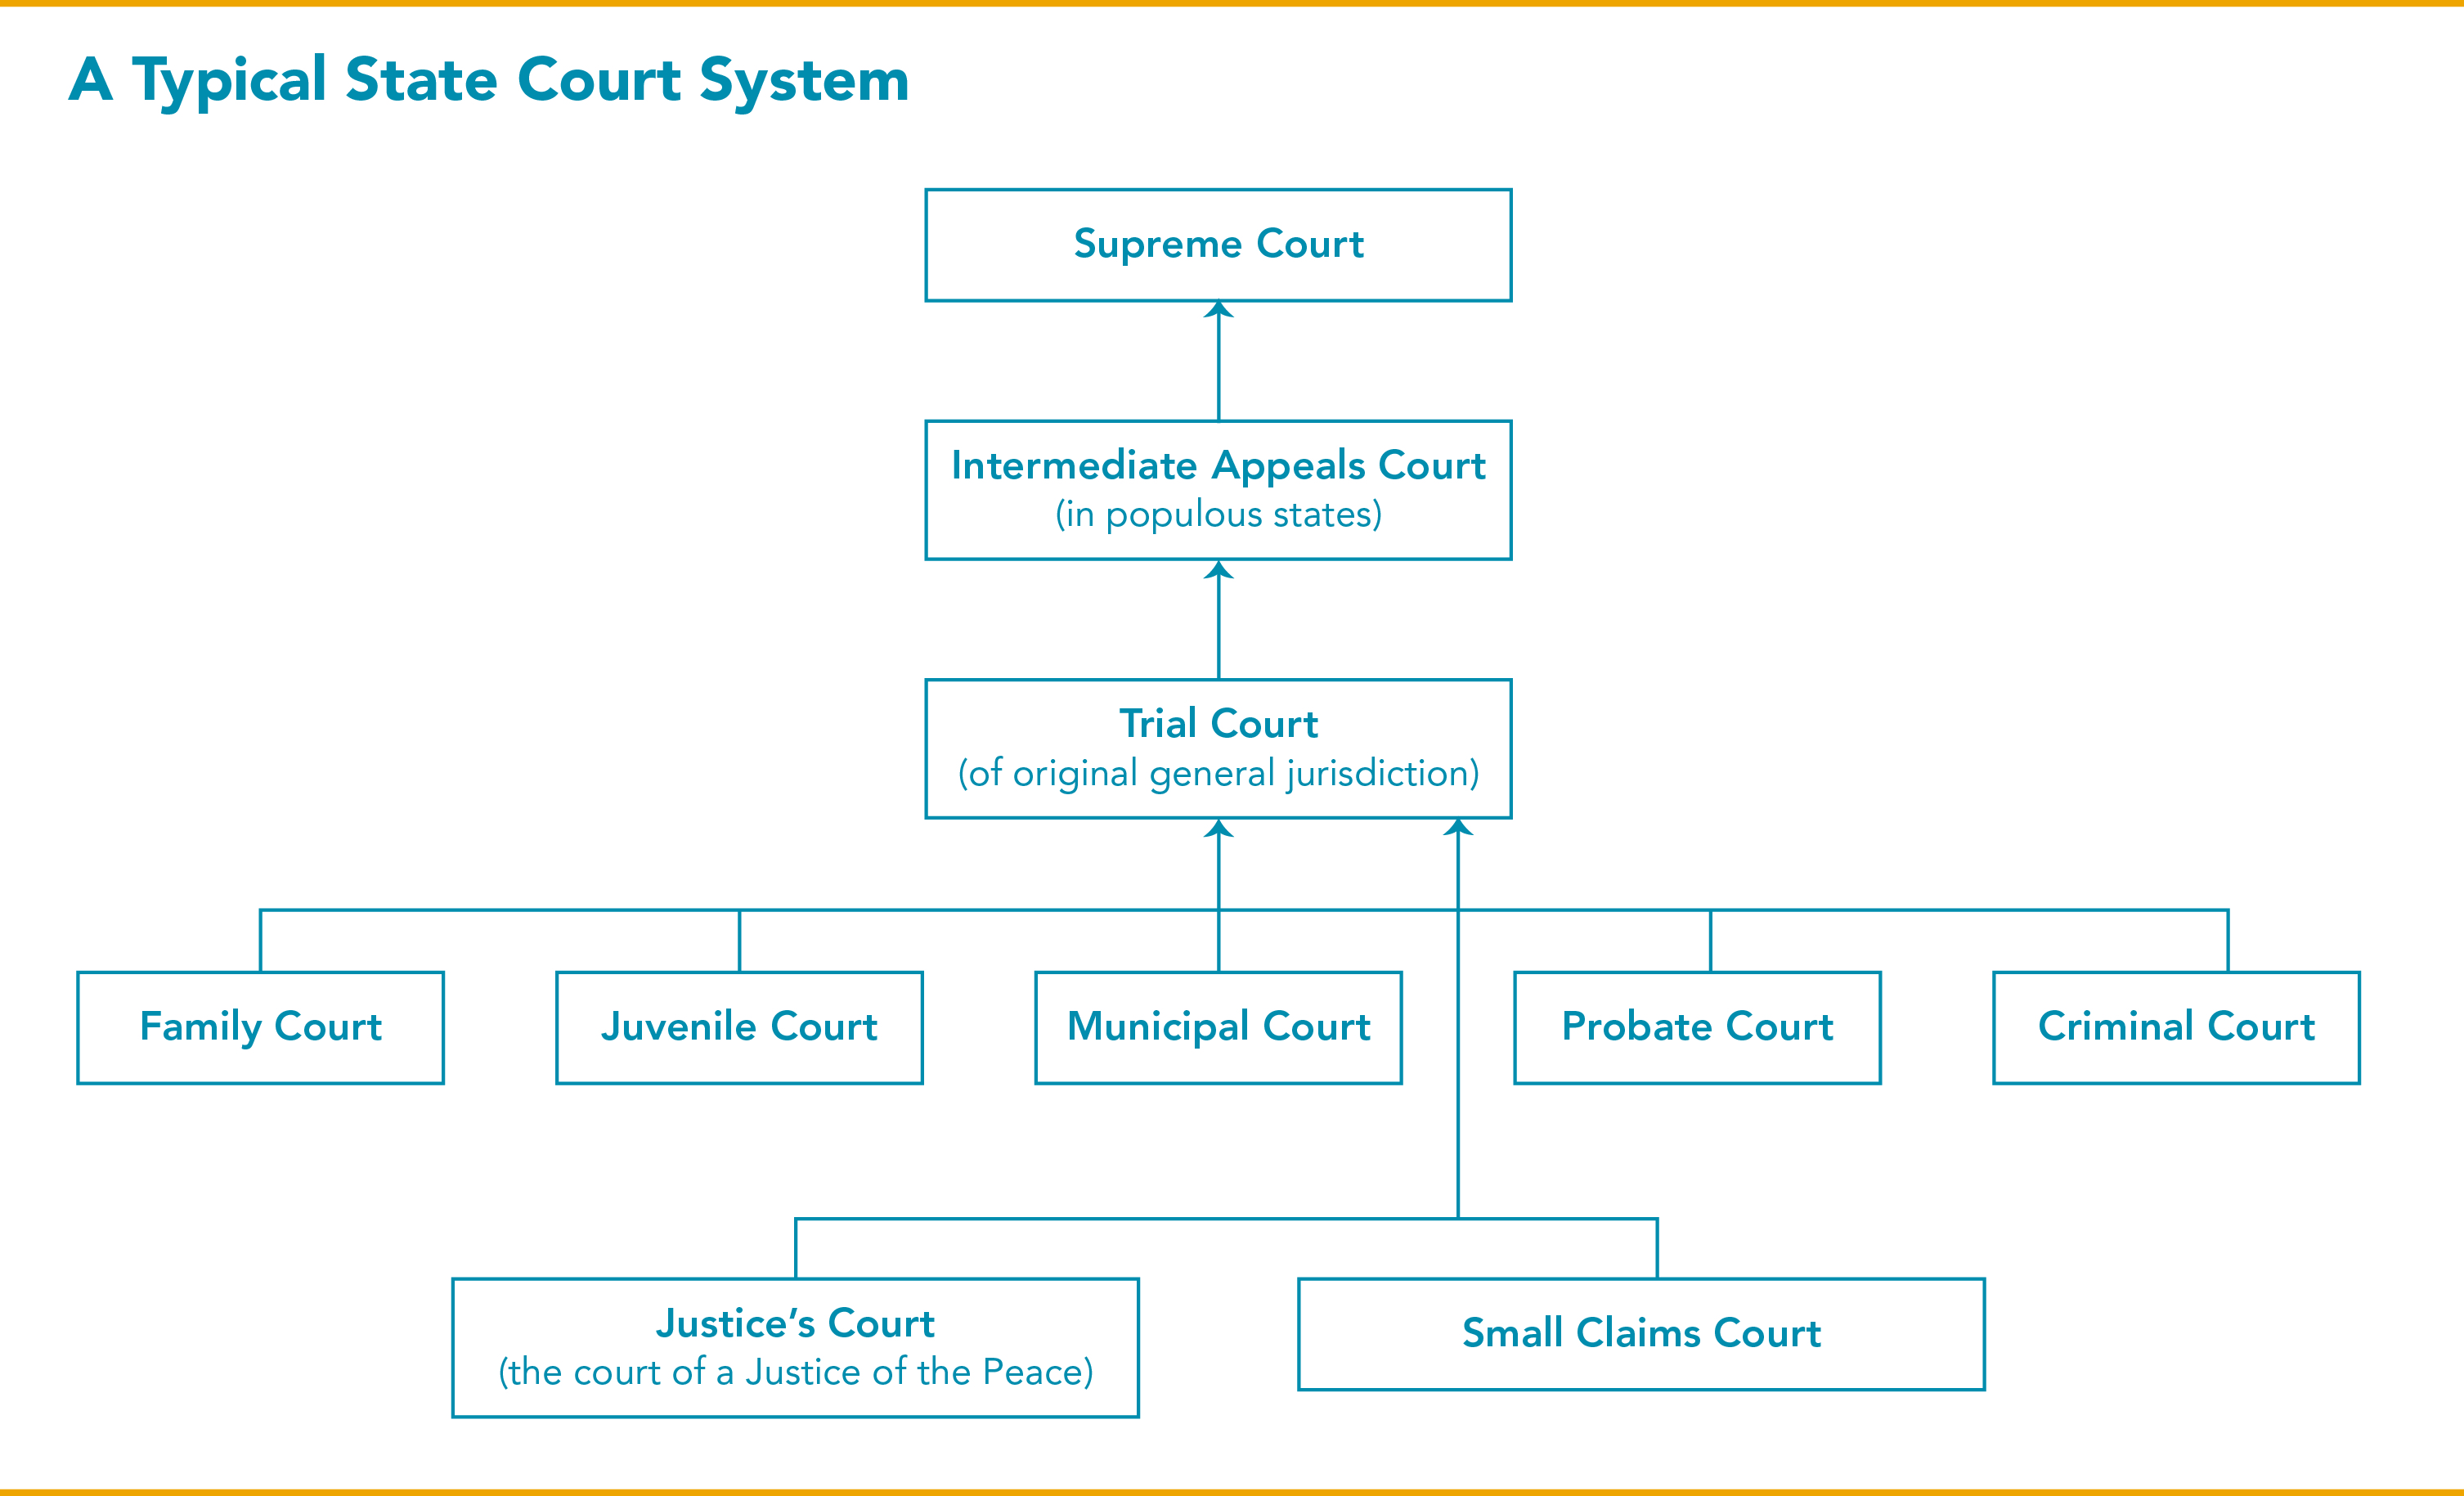 judicial branch court system diagram directv genie swm wiring state courts 101 structure and selection lambda legal